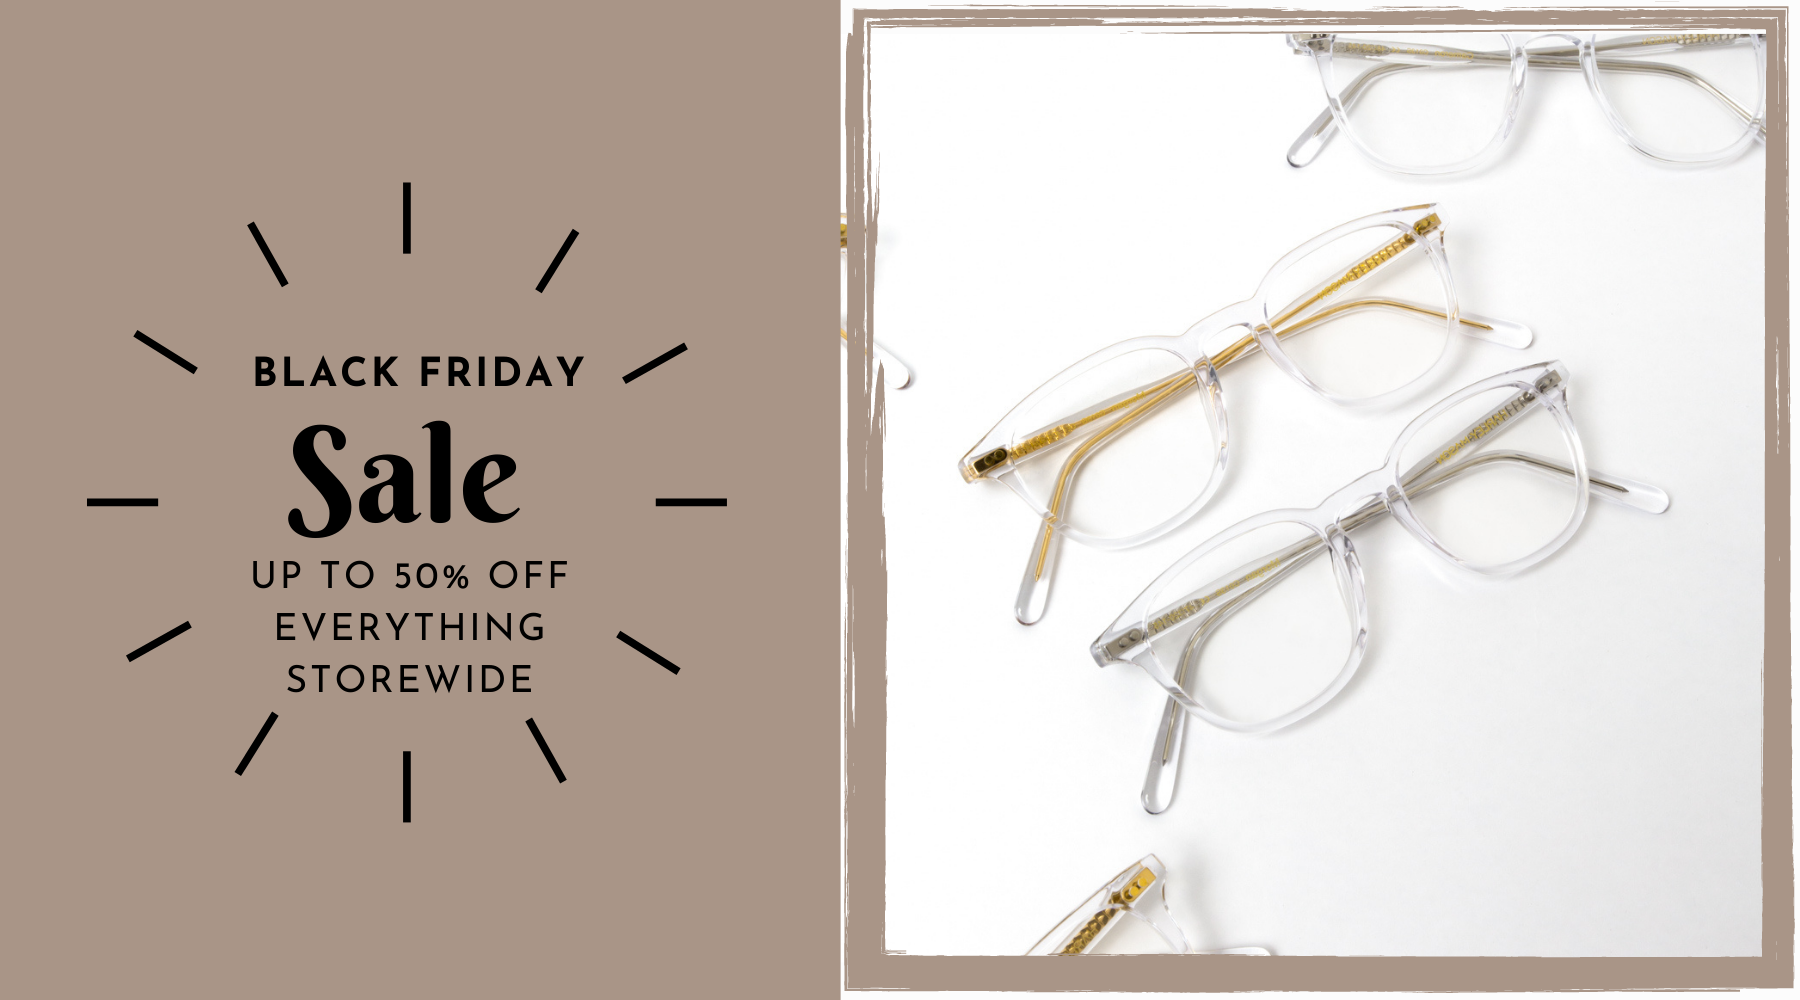 Black Friday sale offering up to 50% off everything storewide. Crystal frames featured.